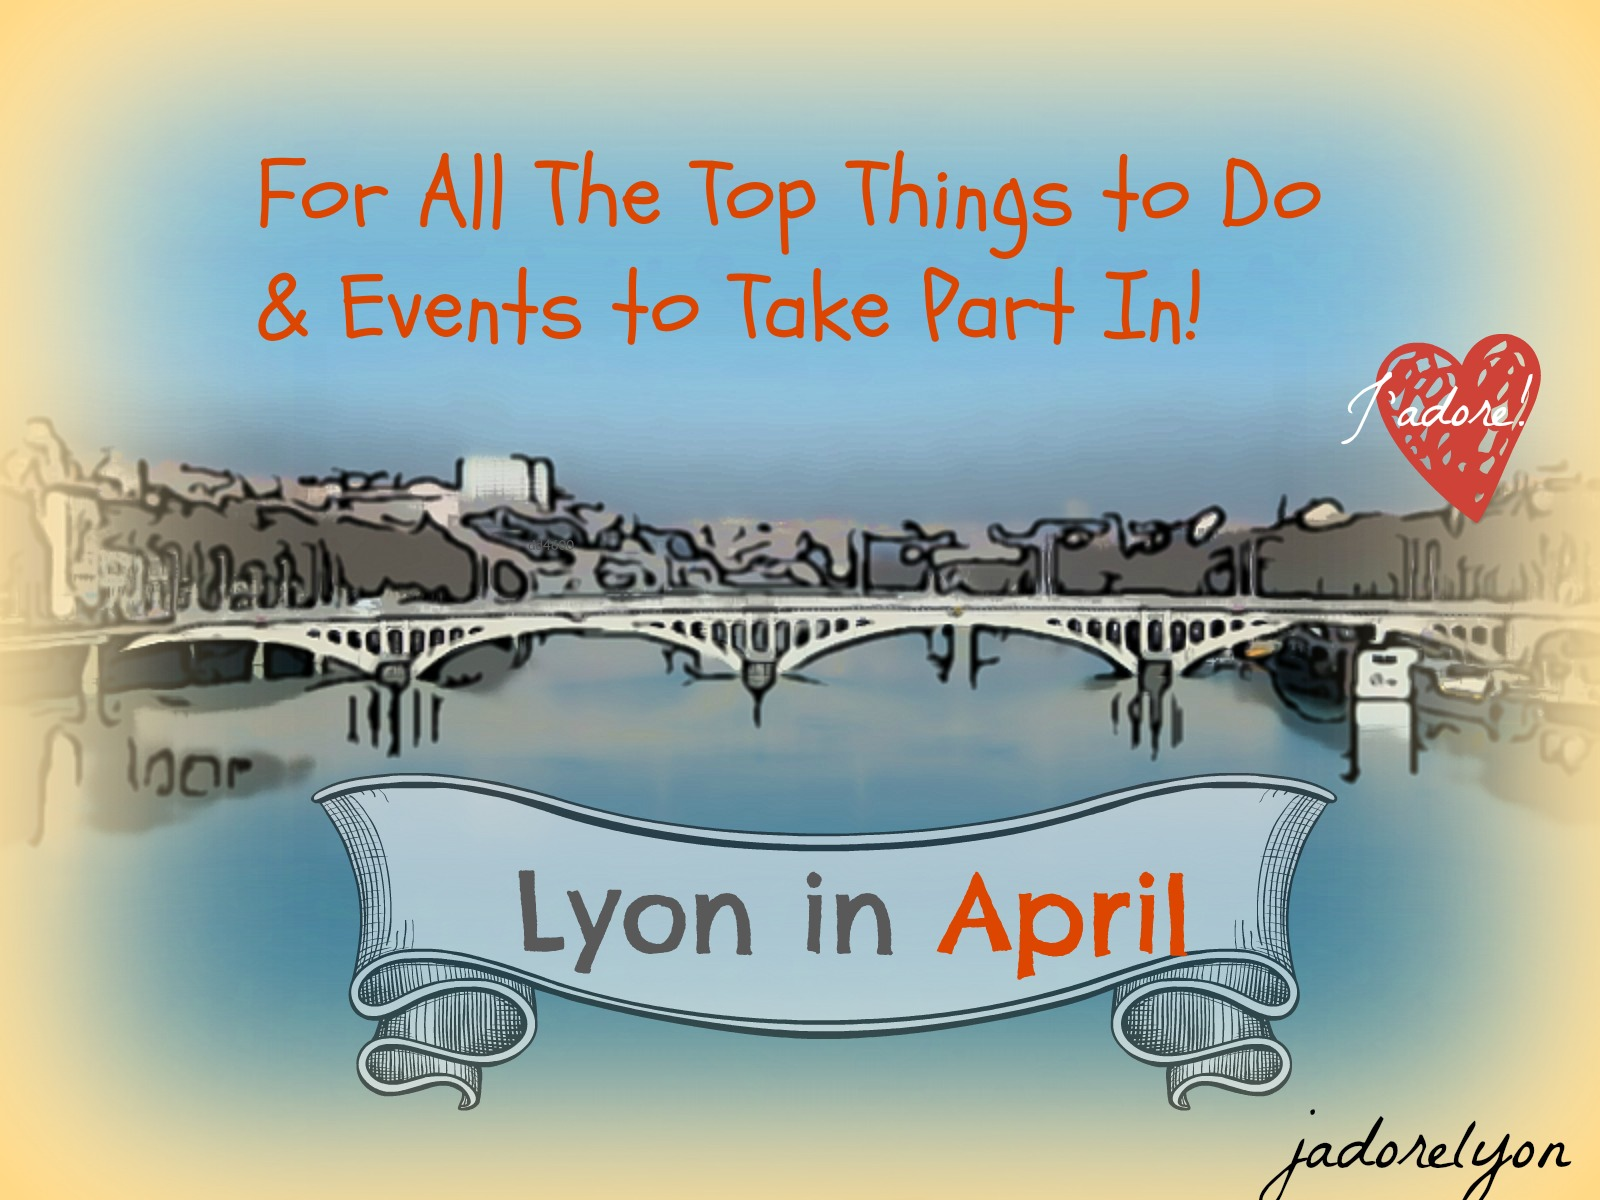 Lyon in April